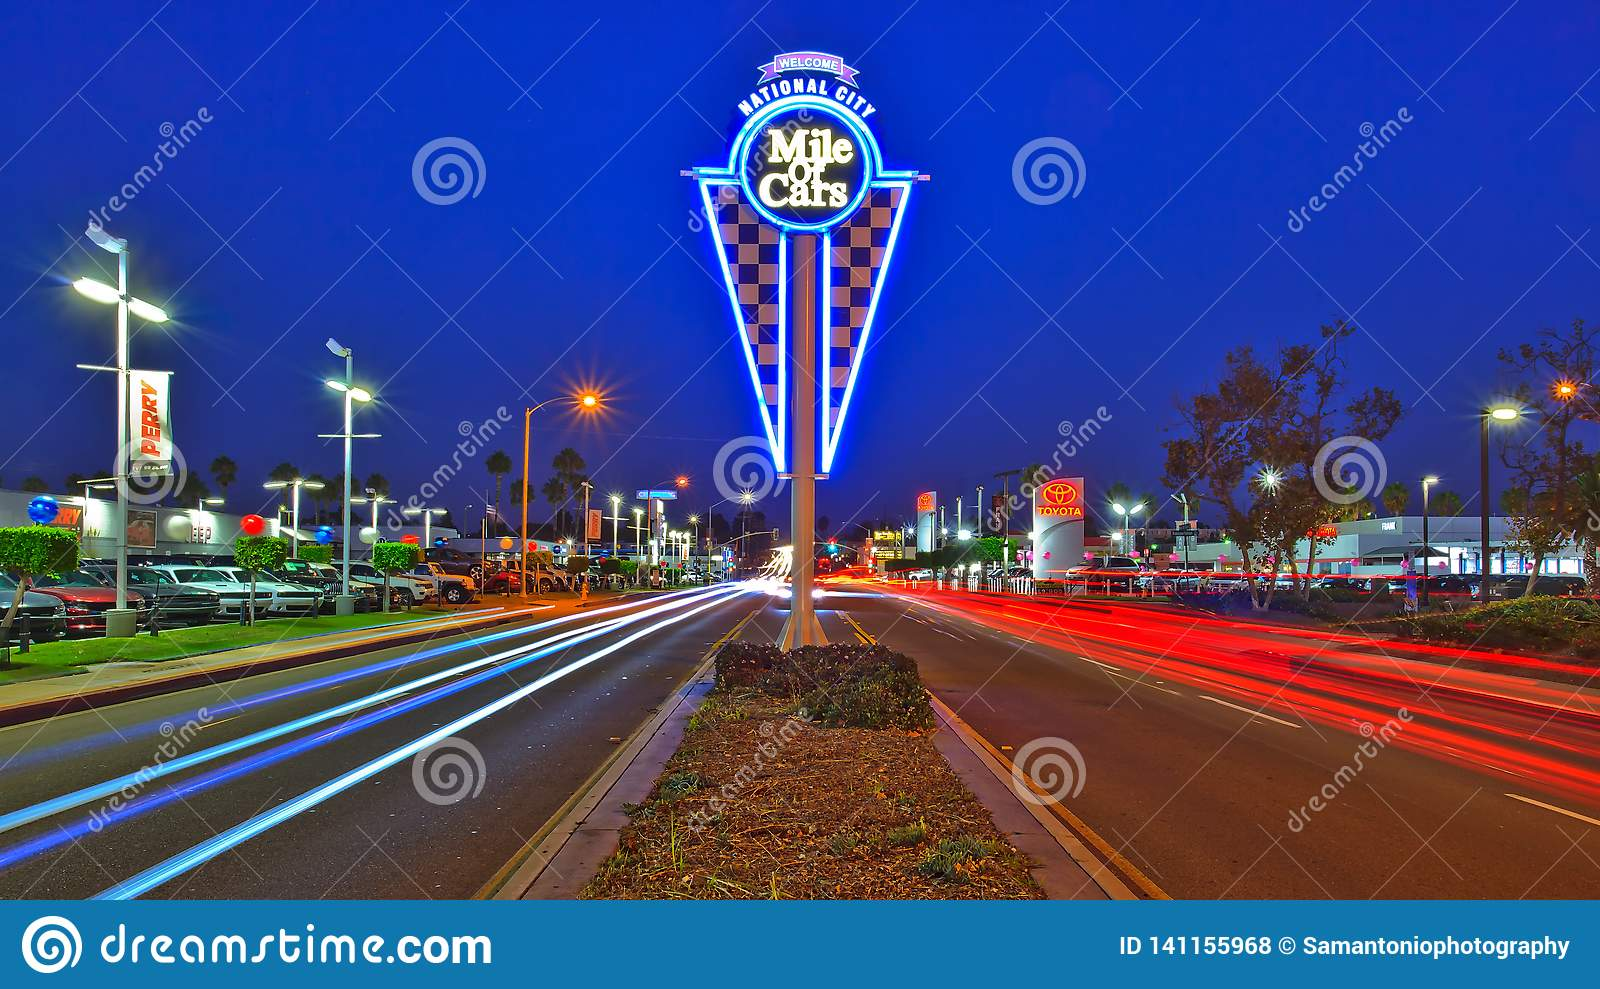 Mile Of Cars >> The National City Mile Of Cars Urban Neon Sign Editorial